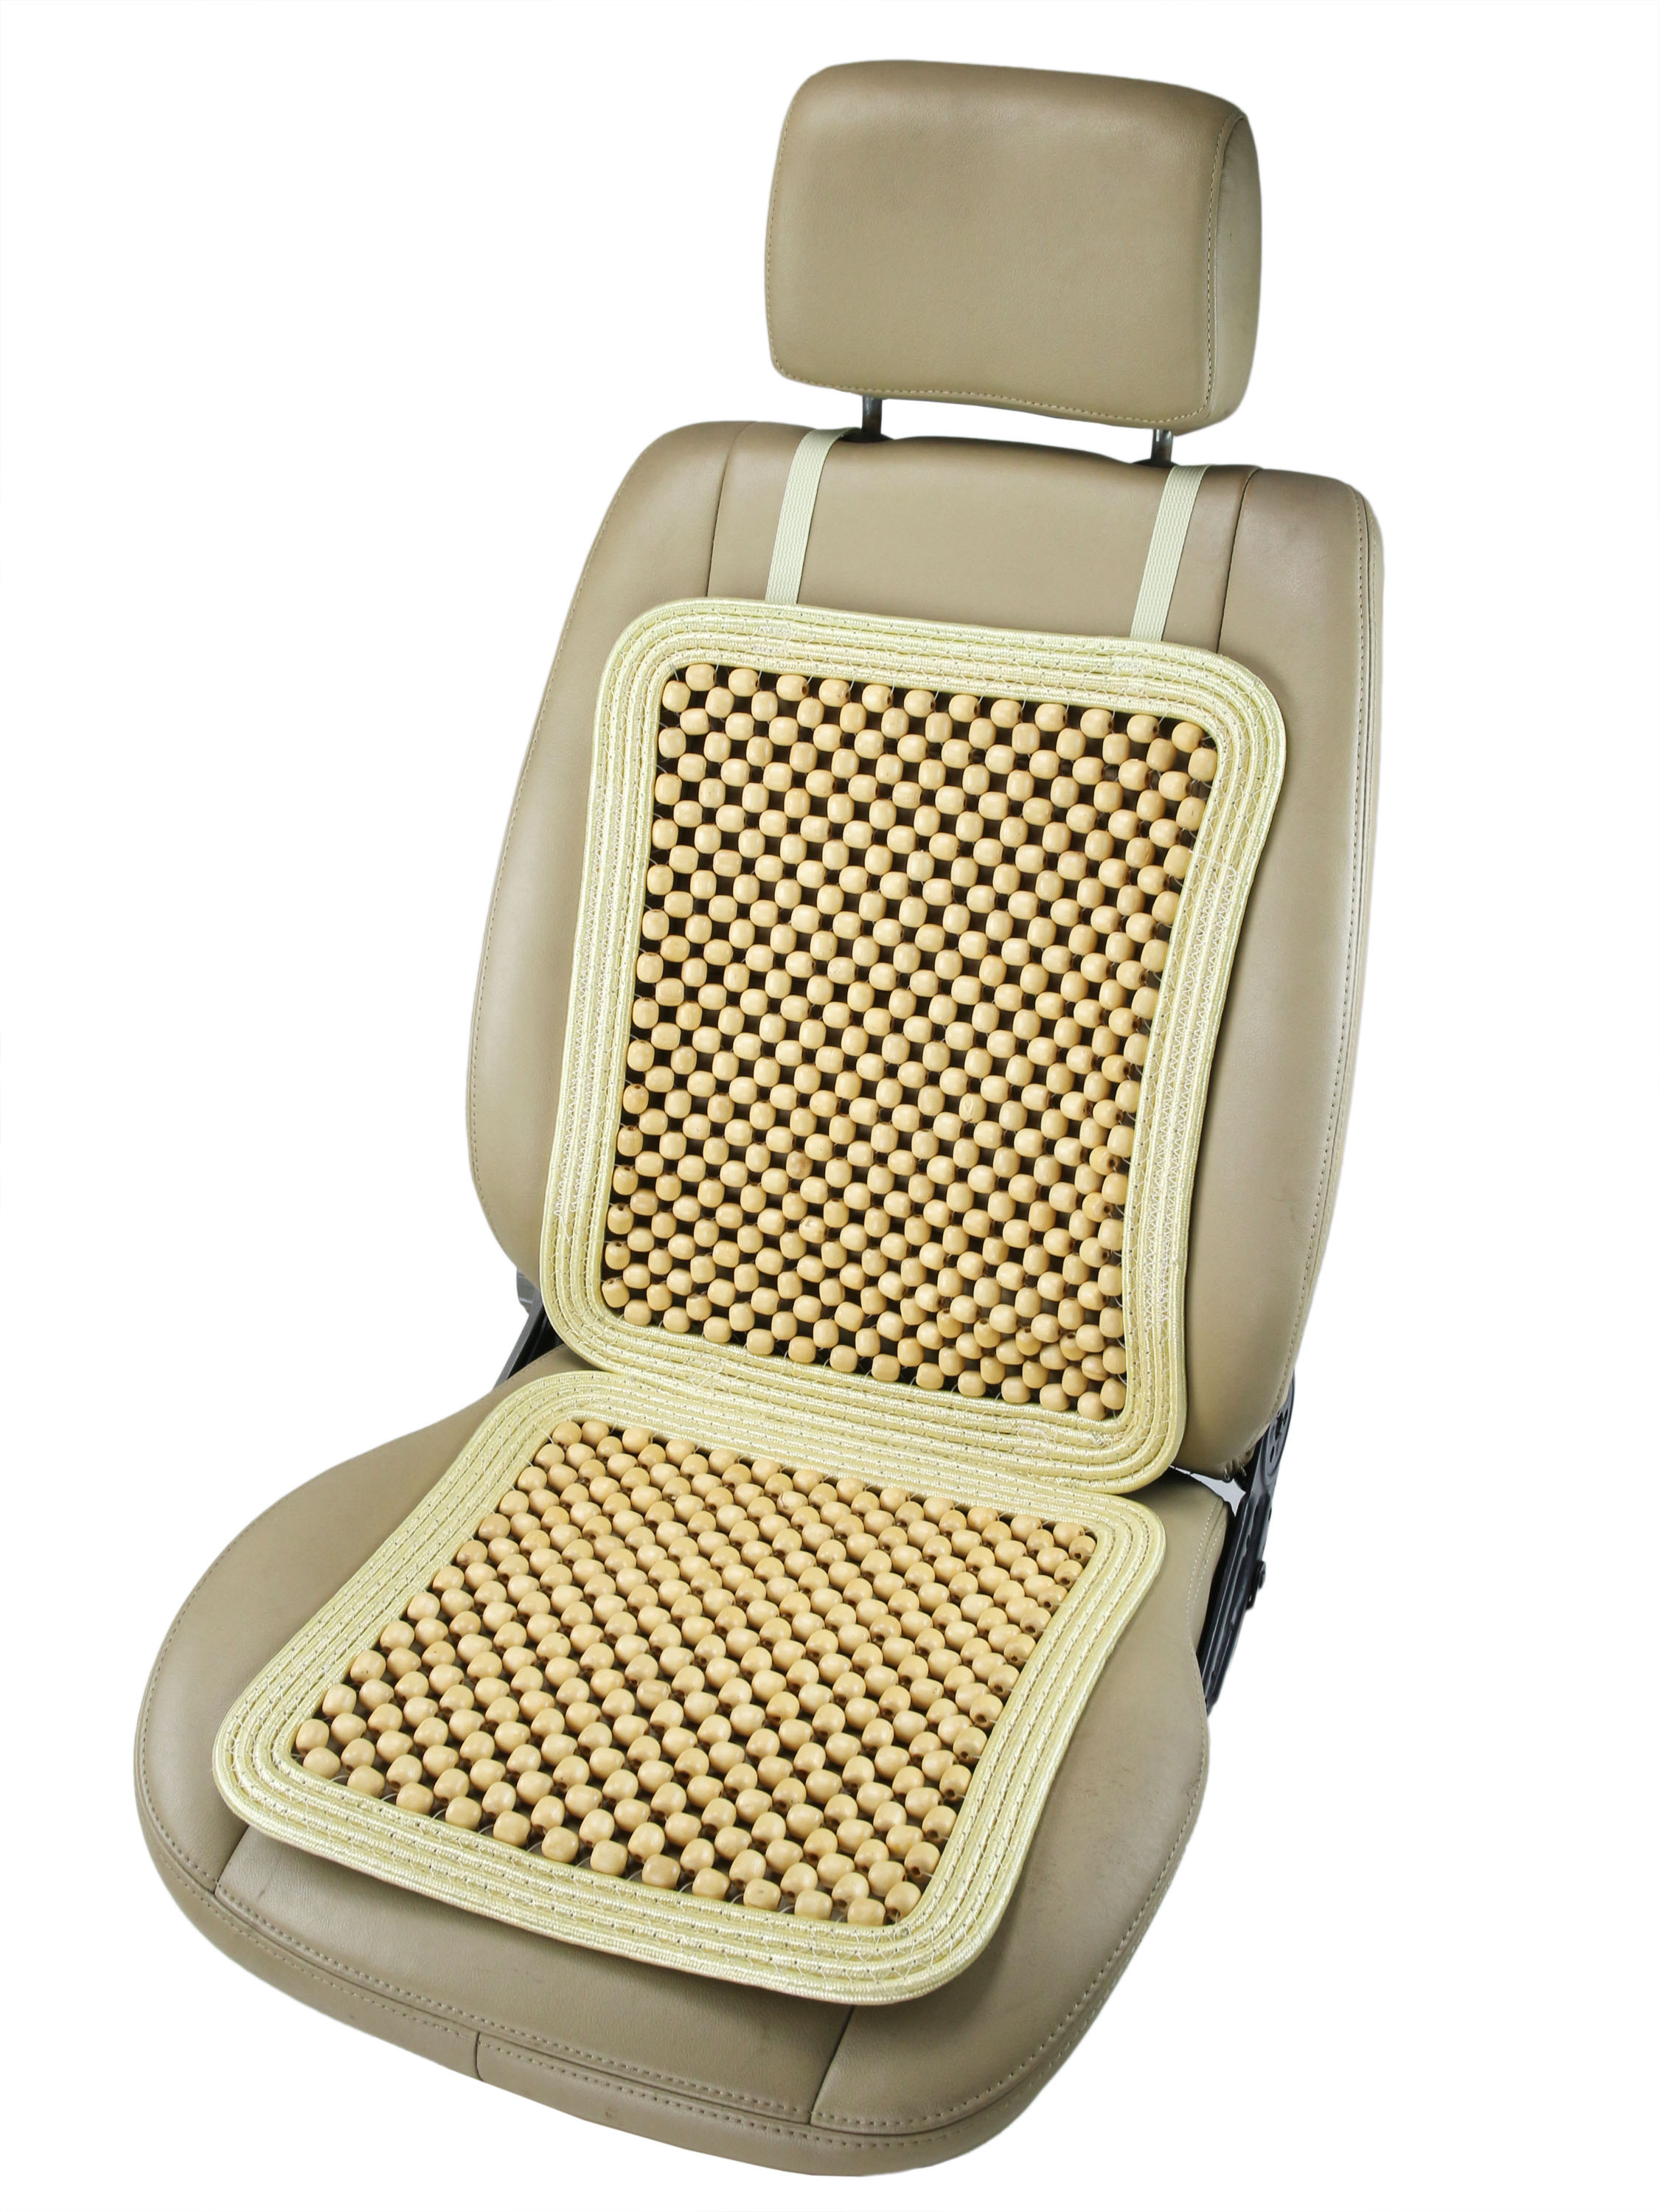 Car Seat Cushions Australia Sw 7340 Natural Wooden Bead Seat Cushion With Border Obbomed